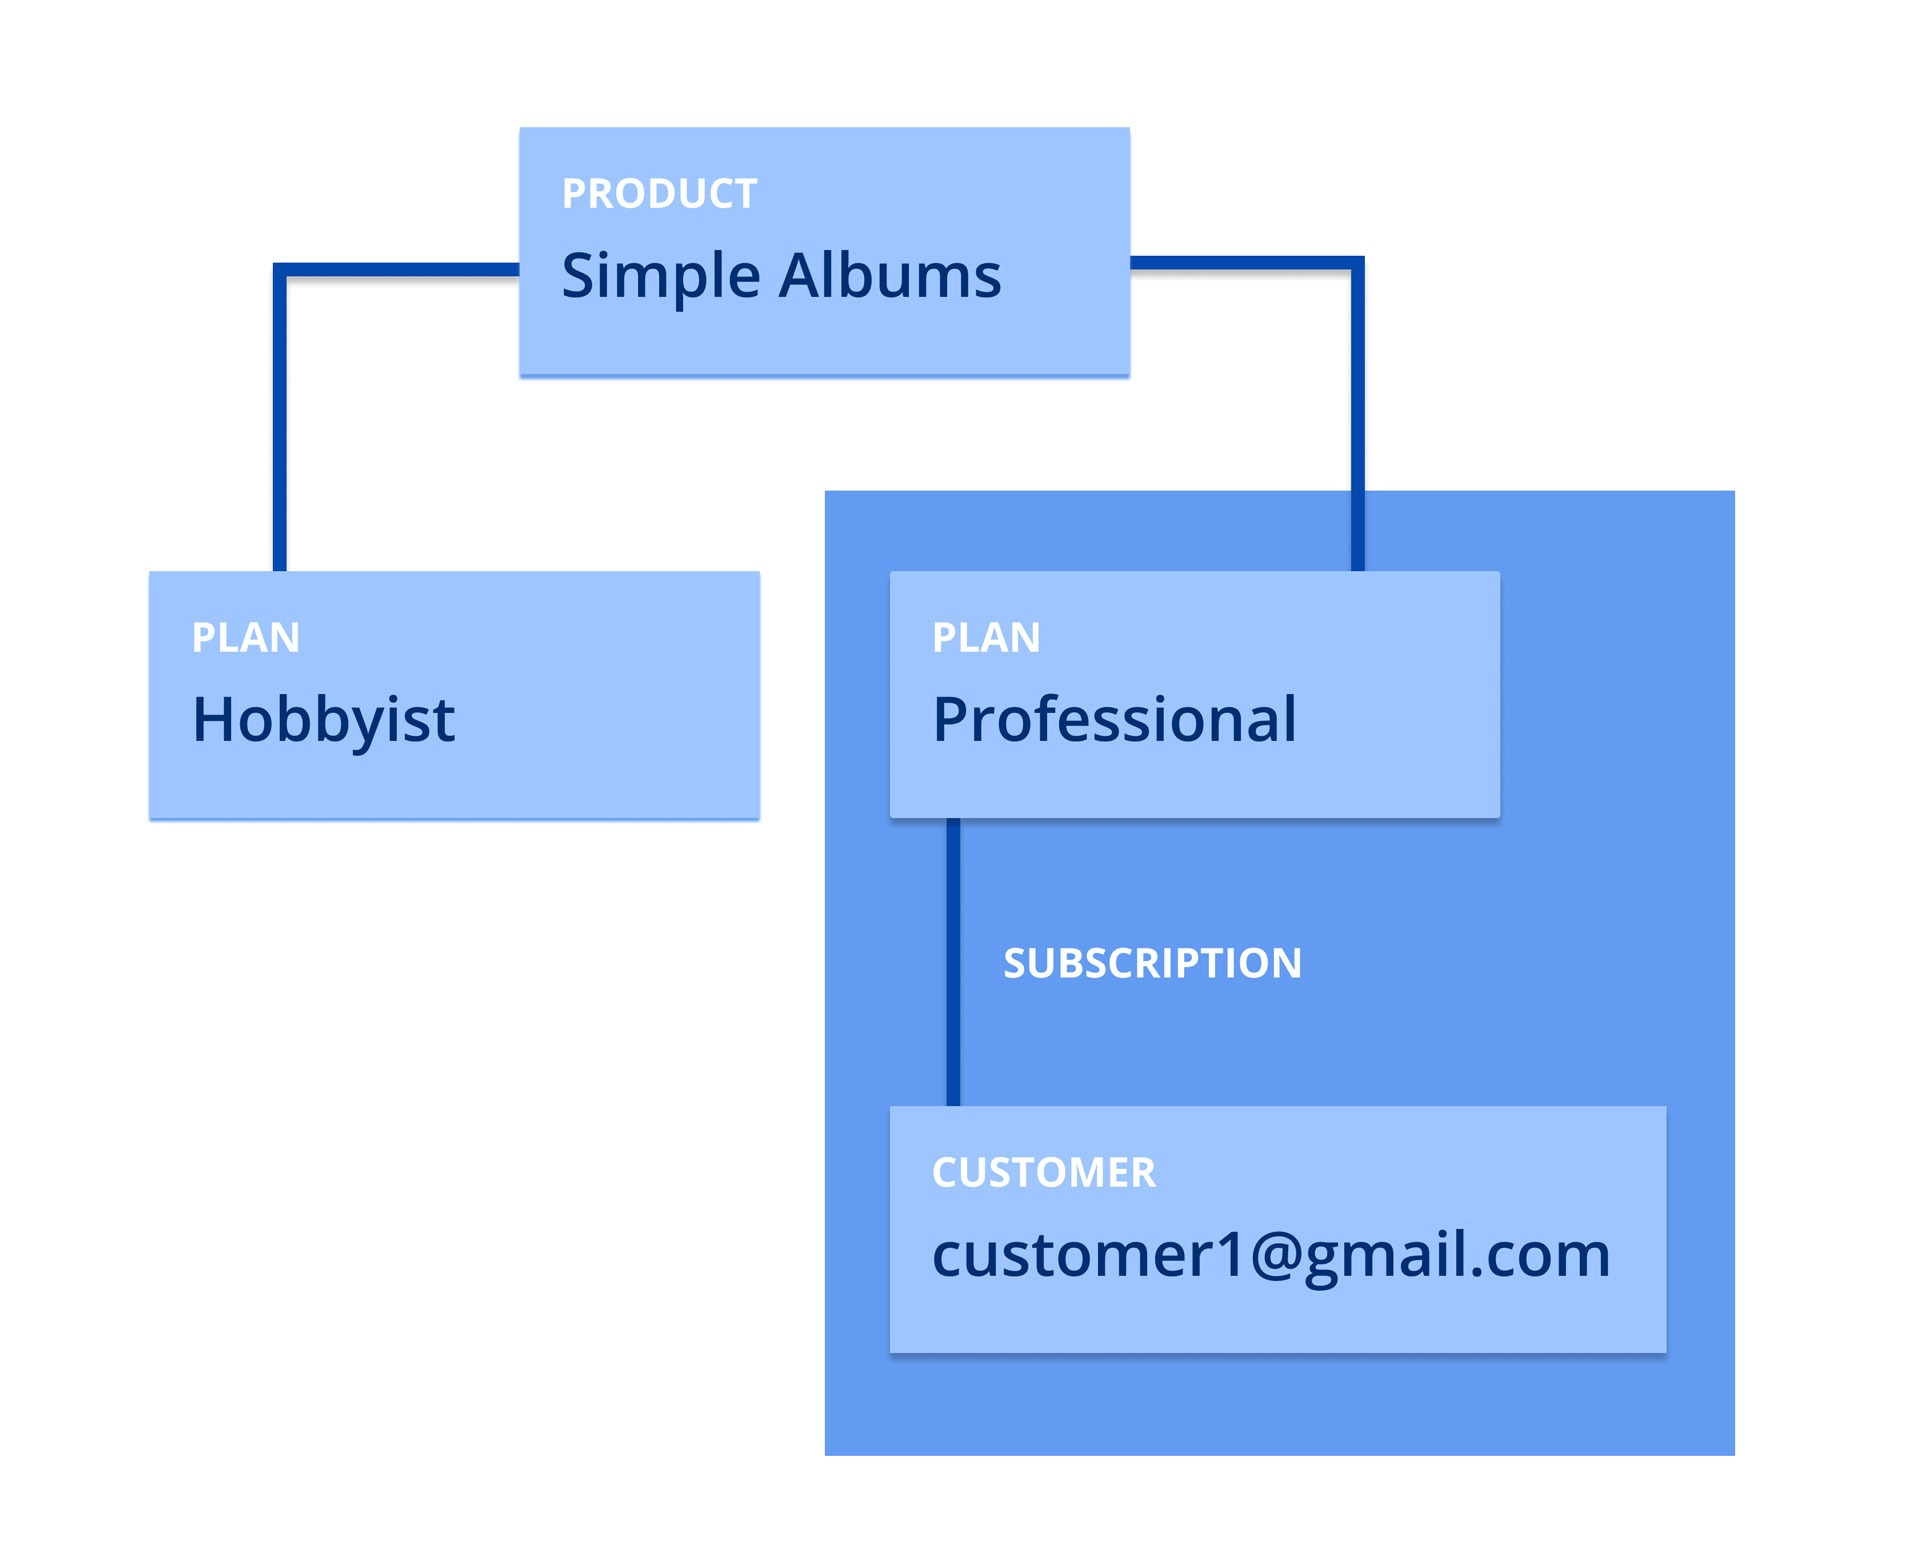 A diagram of Stripe Products, Plans, Subscriptions, and Customers